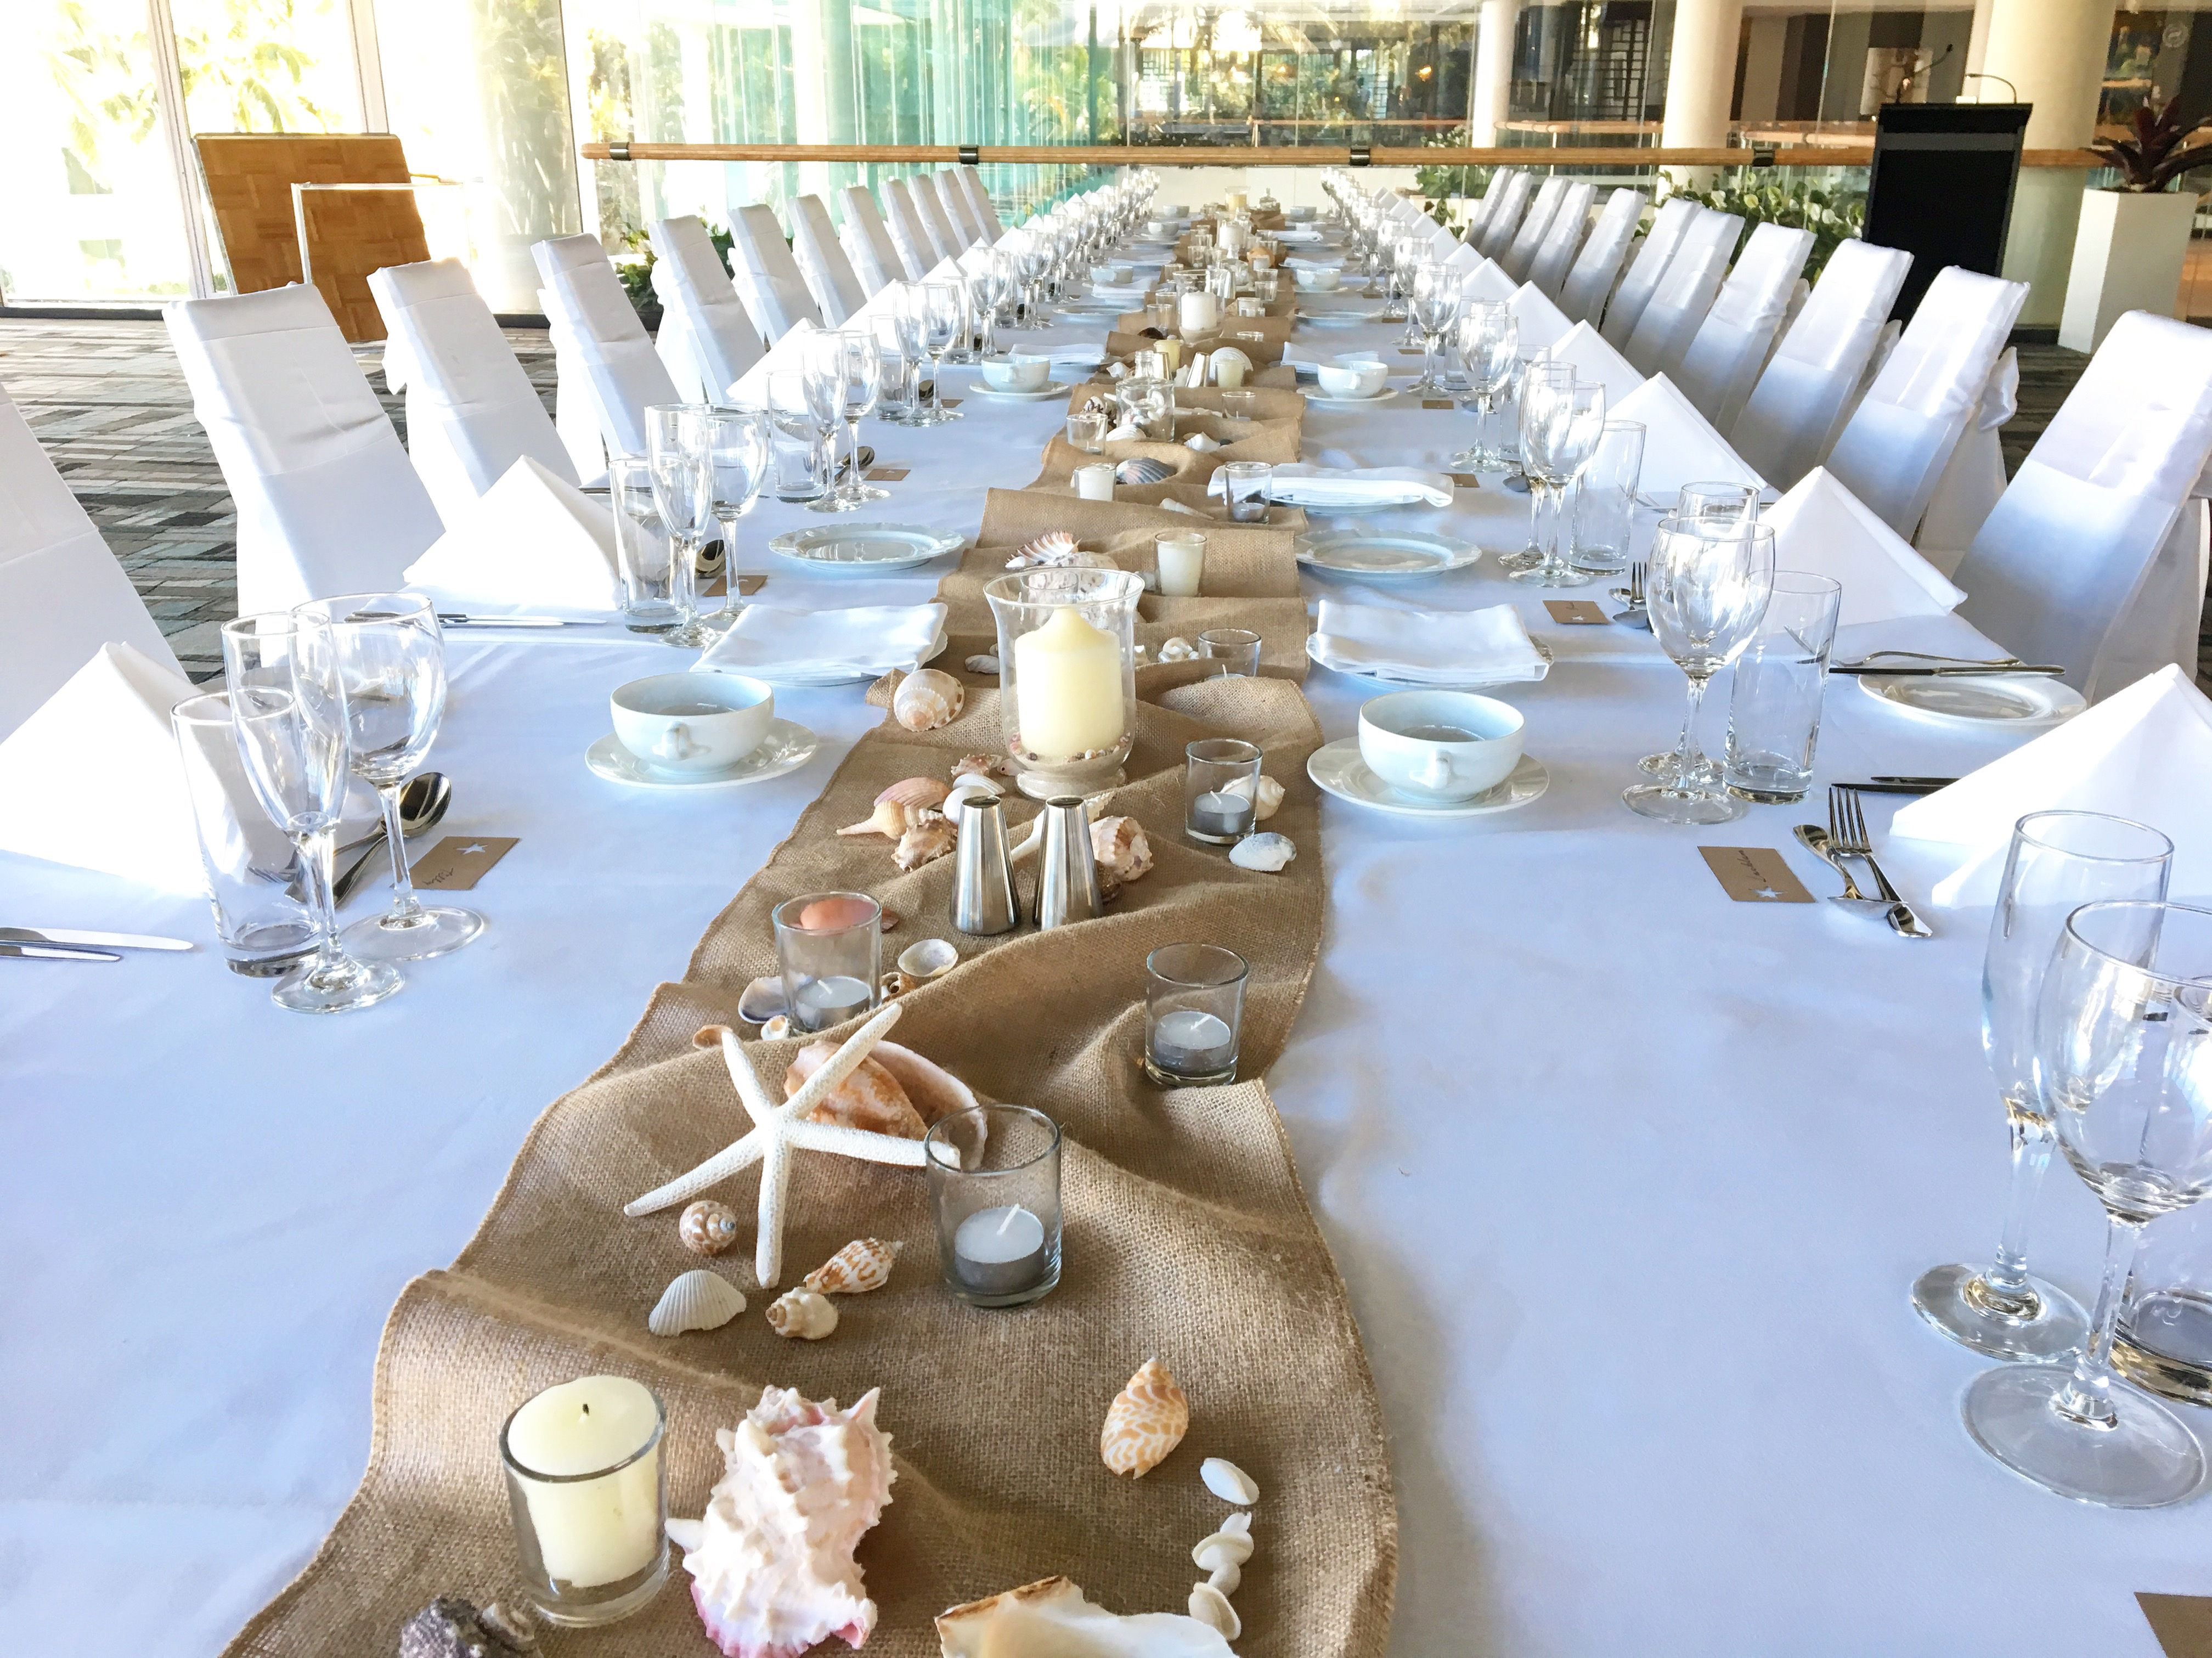 sheraton_mirage_gold_coast_wedding_reception.JPG